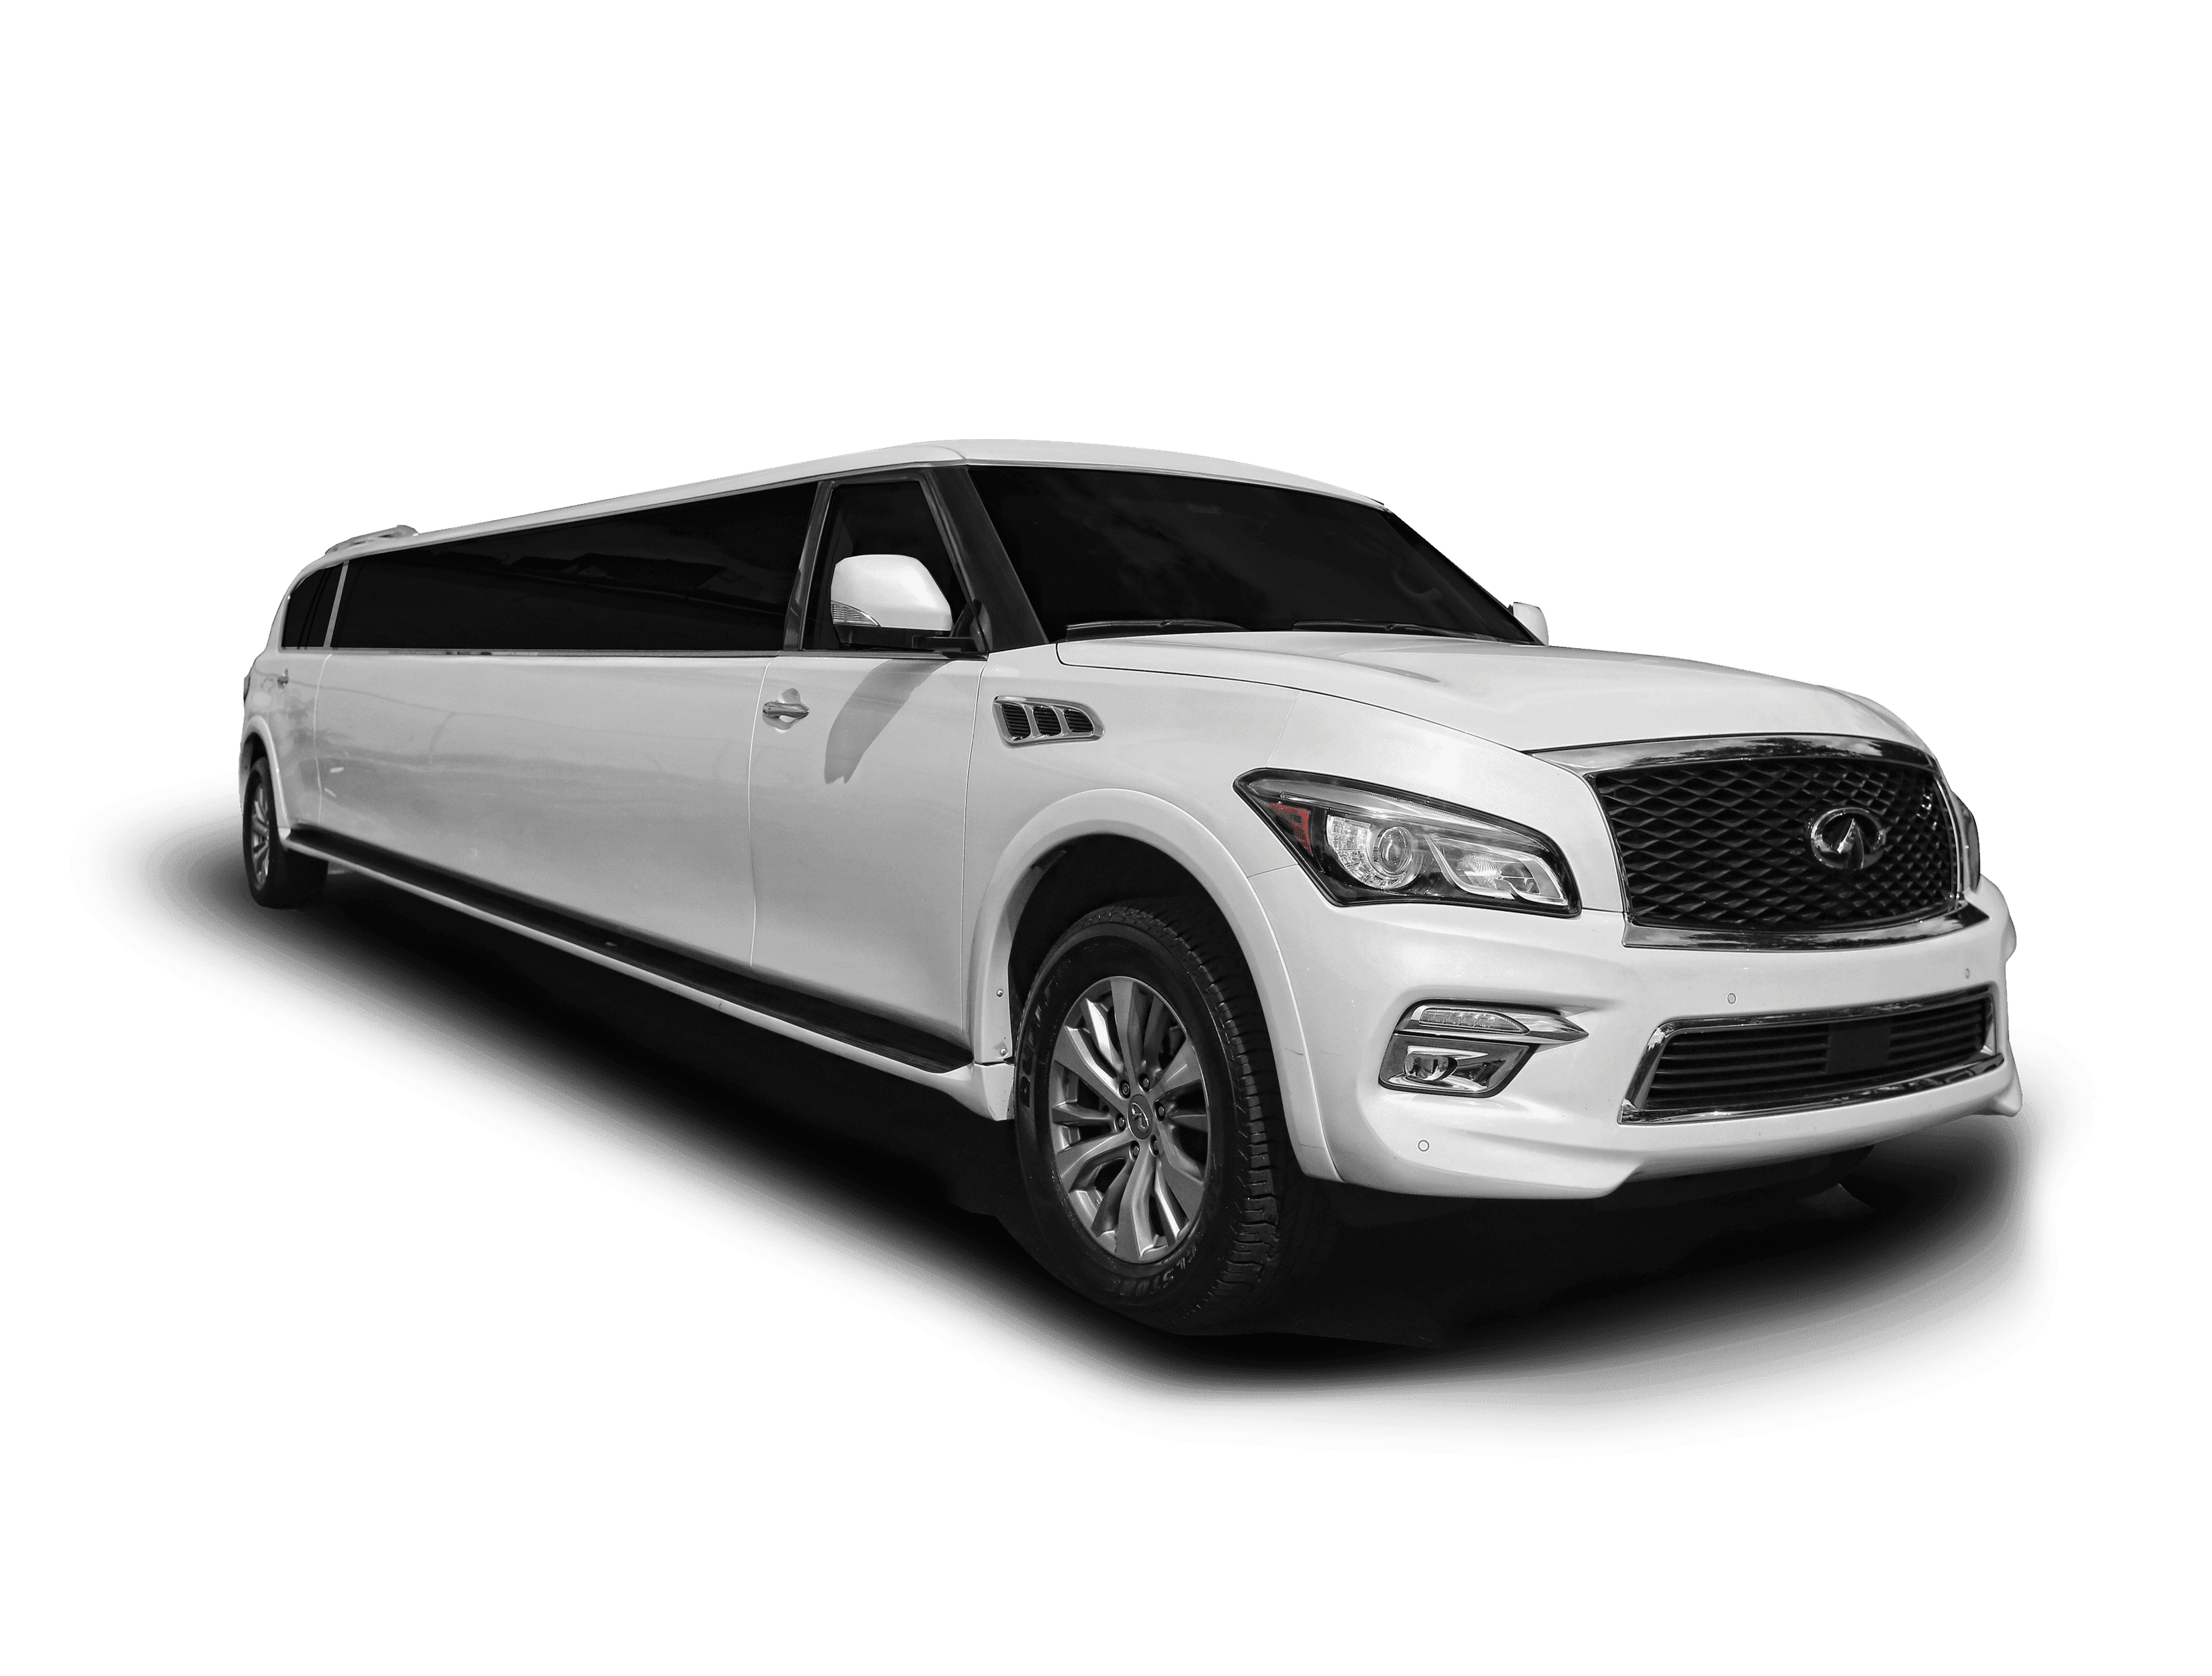 Infiniti QX 80 limousine for New Jersey Wine Tasting tours